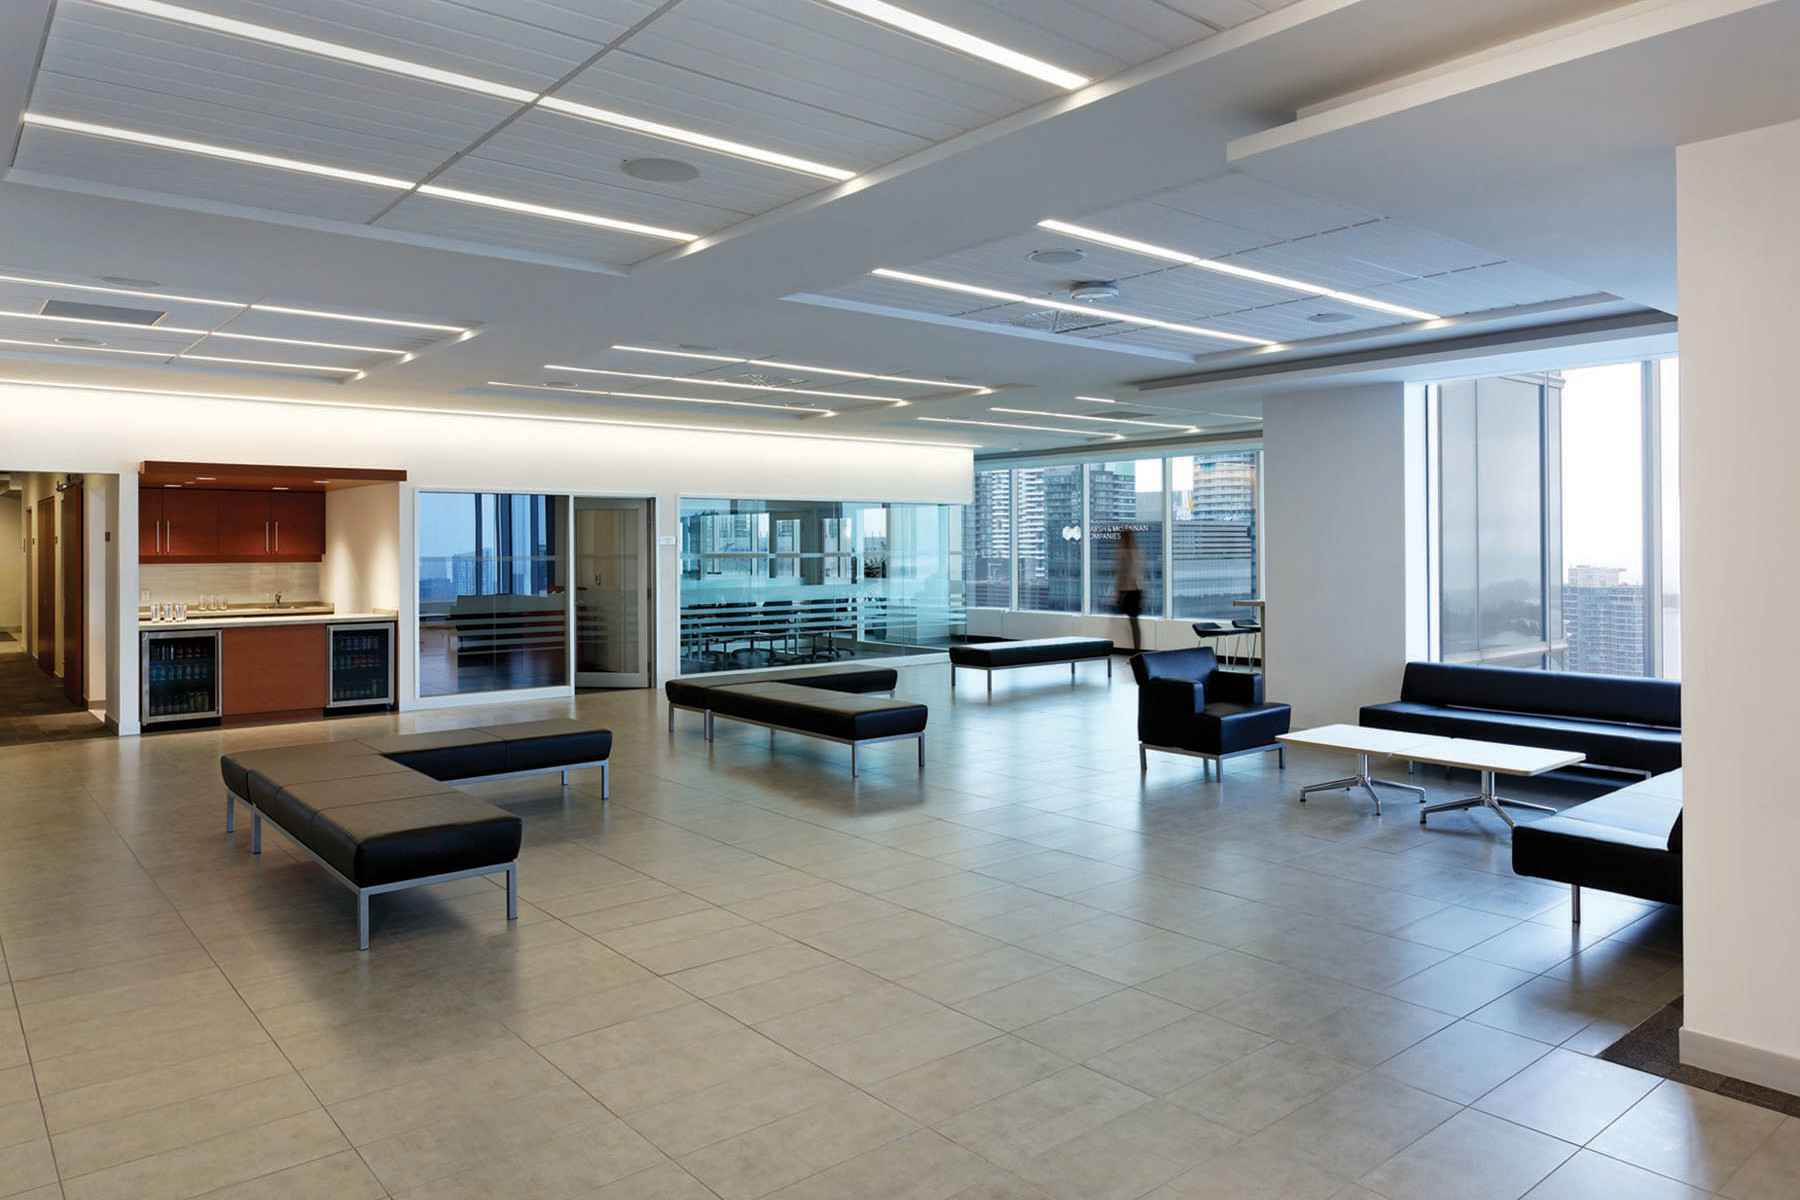 Student lounge area with soft bench seating, kitchenette, glazed meeting room and perimeter windows with views of lake and city from 30th floor